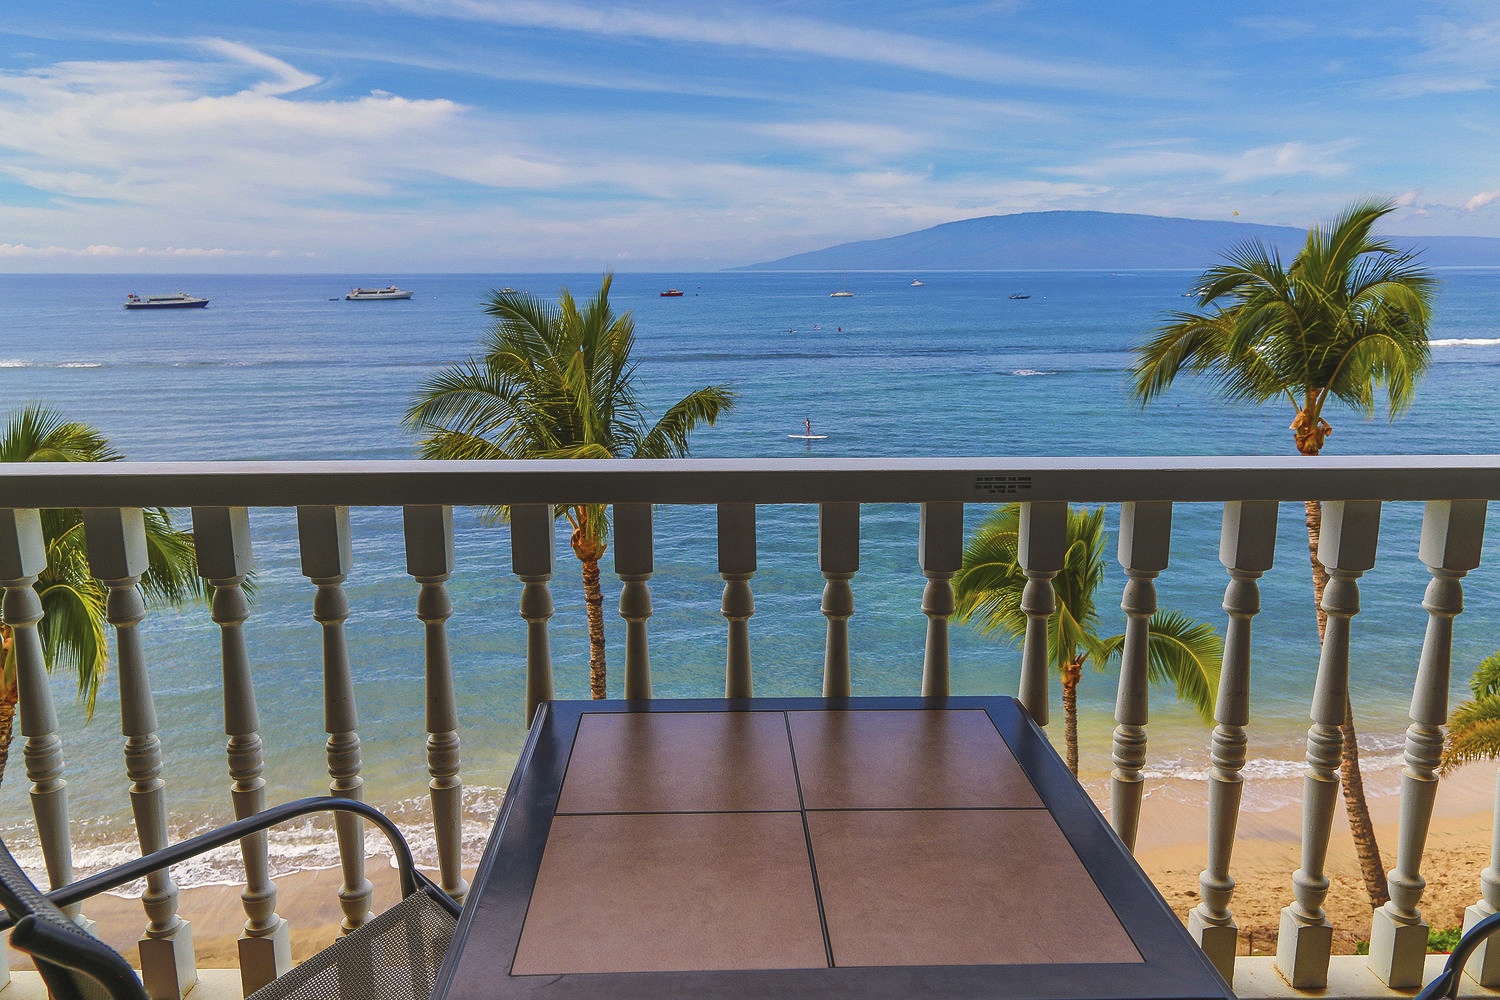 lahaina-shores-beach-resort-maui-LS507-2.jpg